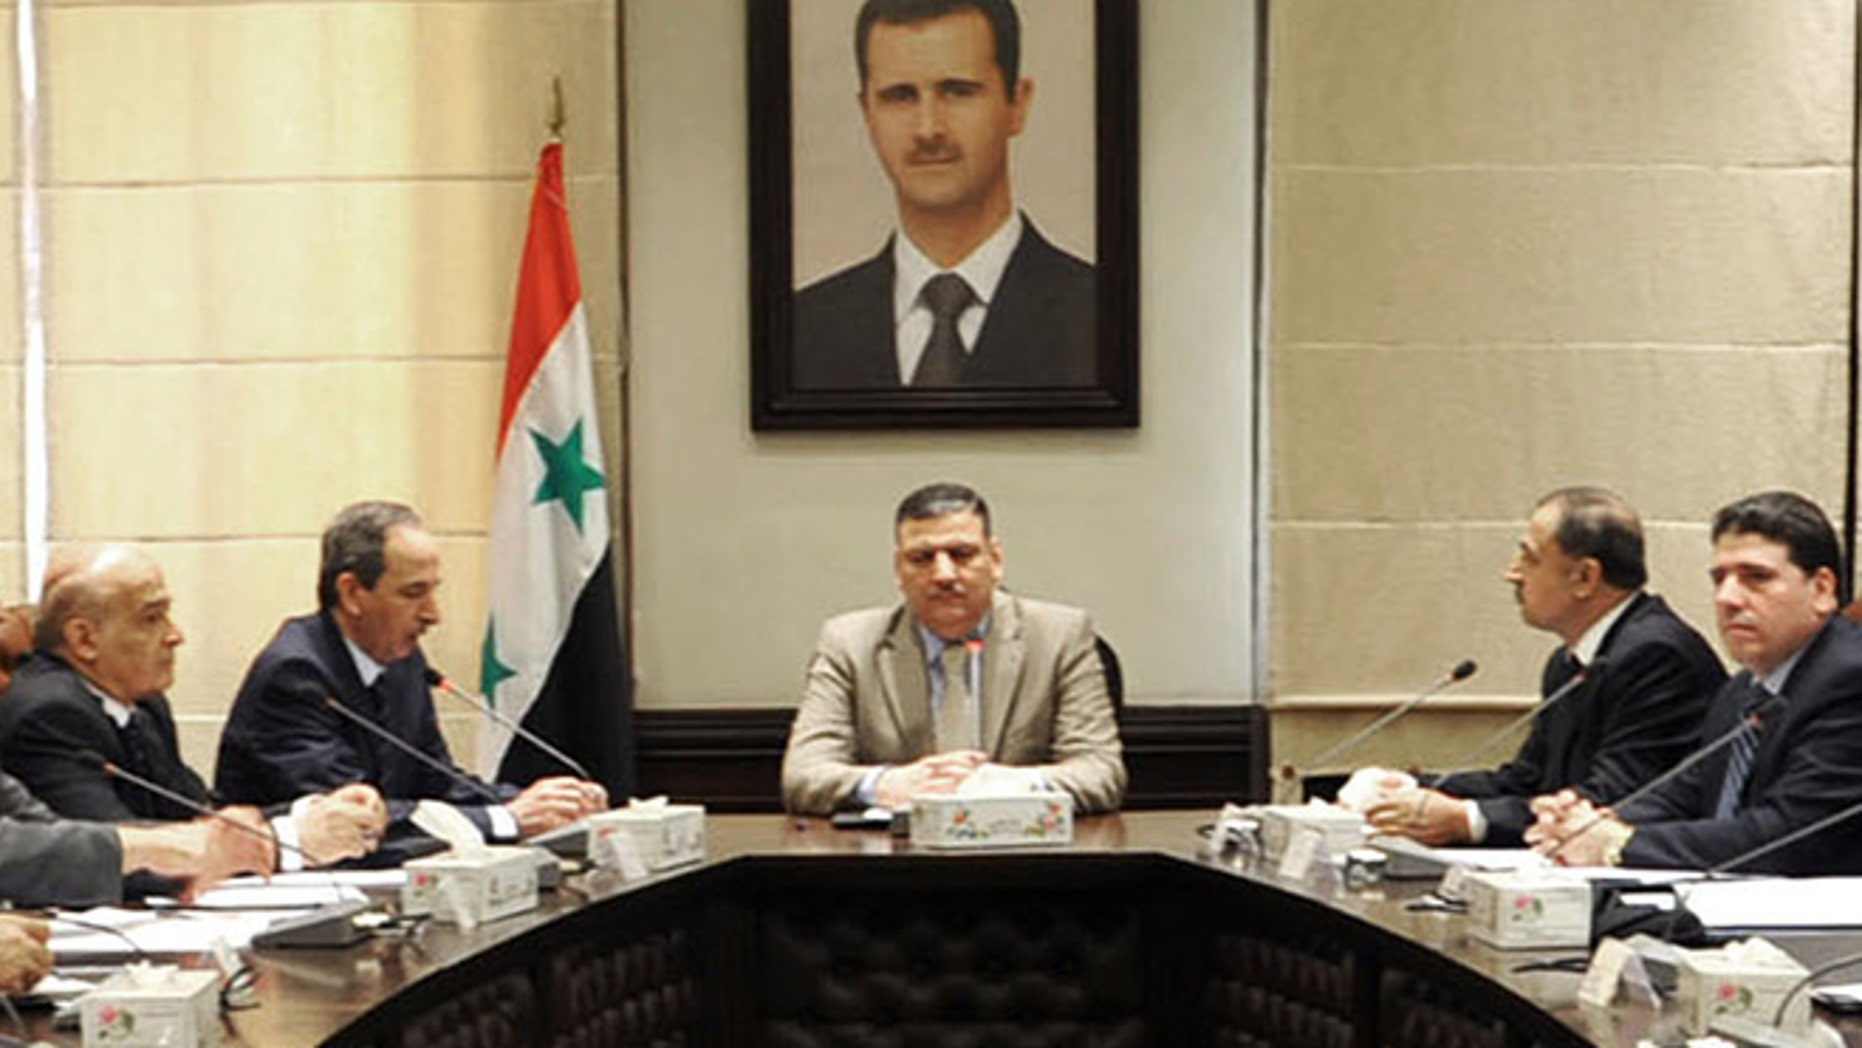 In this undated photo released by the Syrian official news agency SANA on Sunday, Aug. 5, 2012, Syrian Prime Minister Riad Hijab, center, speaks under the portrait of the Syrian President Bashar Assad during a meeting in Damascus, Syria. Hijab defected and fled to neighboring Jordan, a Jordanian official and a rebel spokesman said Monday, Aug. 6, 2012.